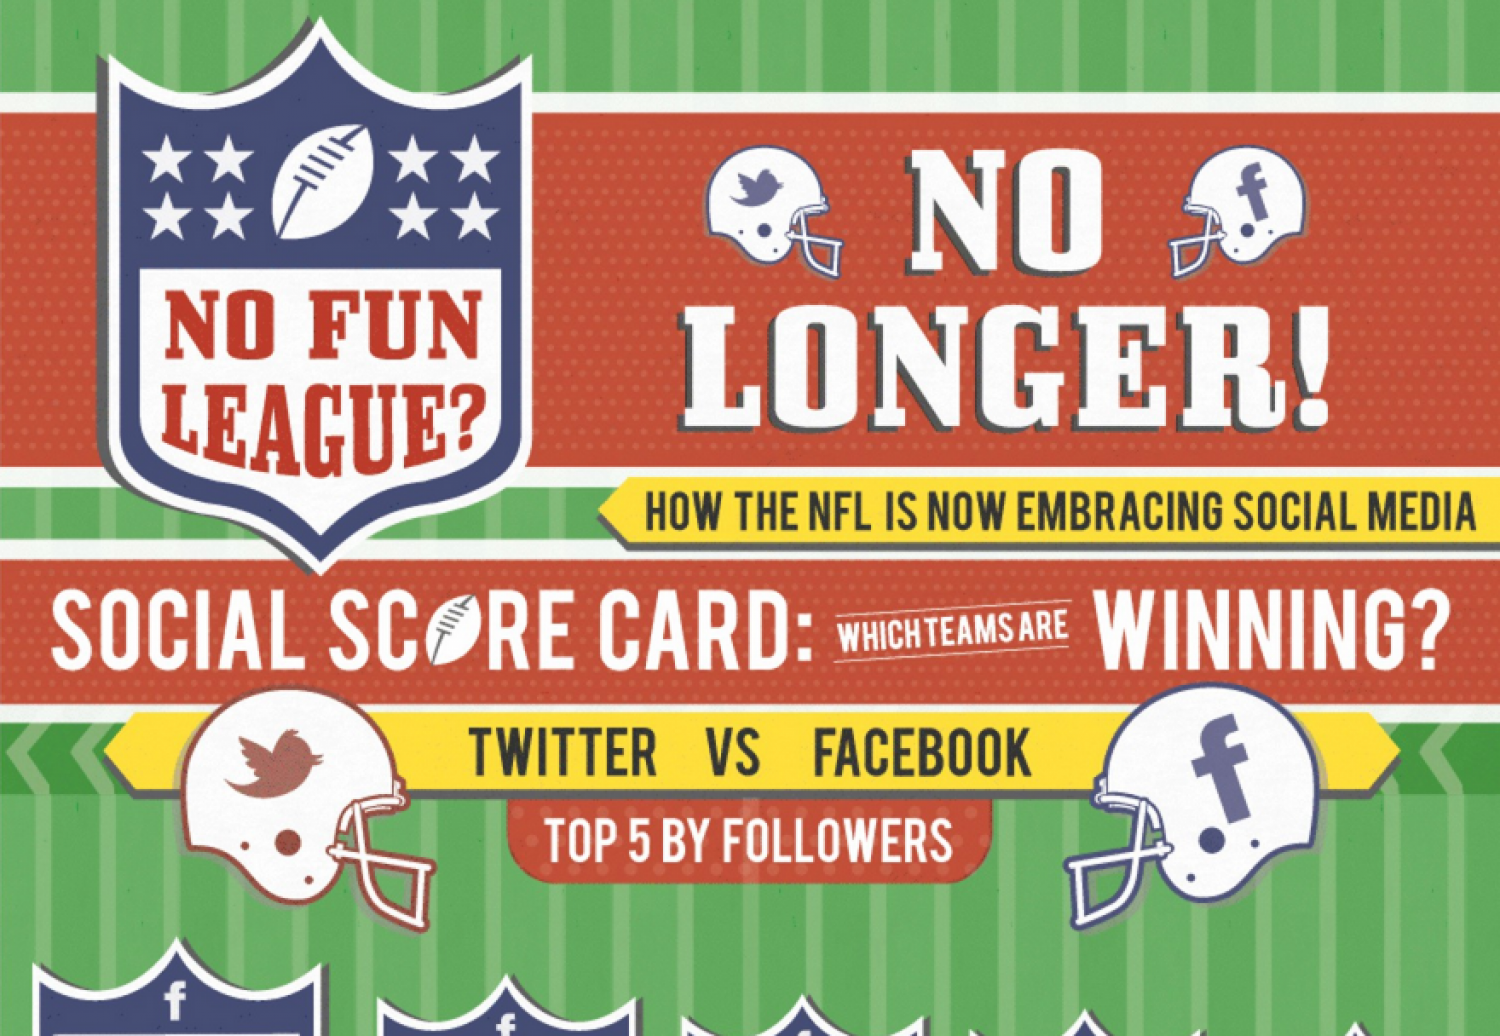 No Fun League? No Longer! Infographic